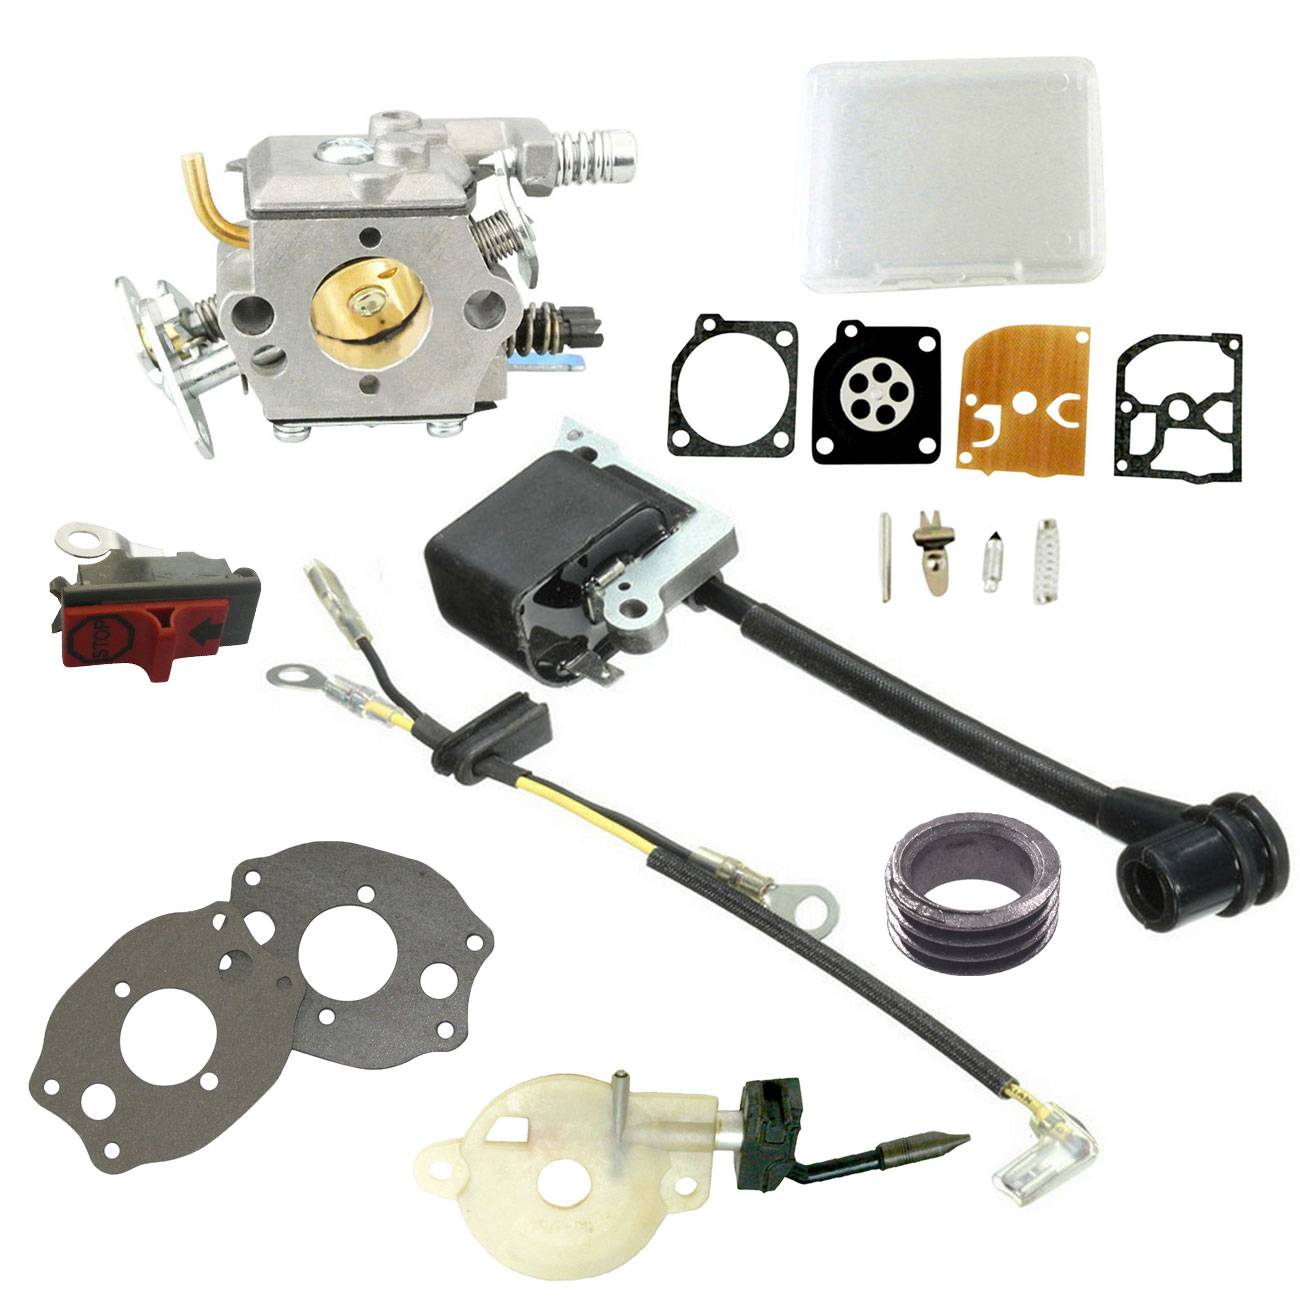 Carburetor & Ignition Coil &Oil Pump Kit for Husqvarna 41 136 137 141 142 chainsaw module ignition coil wire kit for husqvarna 36 41 136 137 141 142 chainsaw 530039239